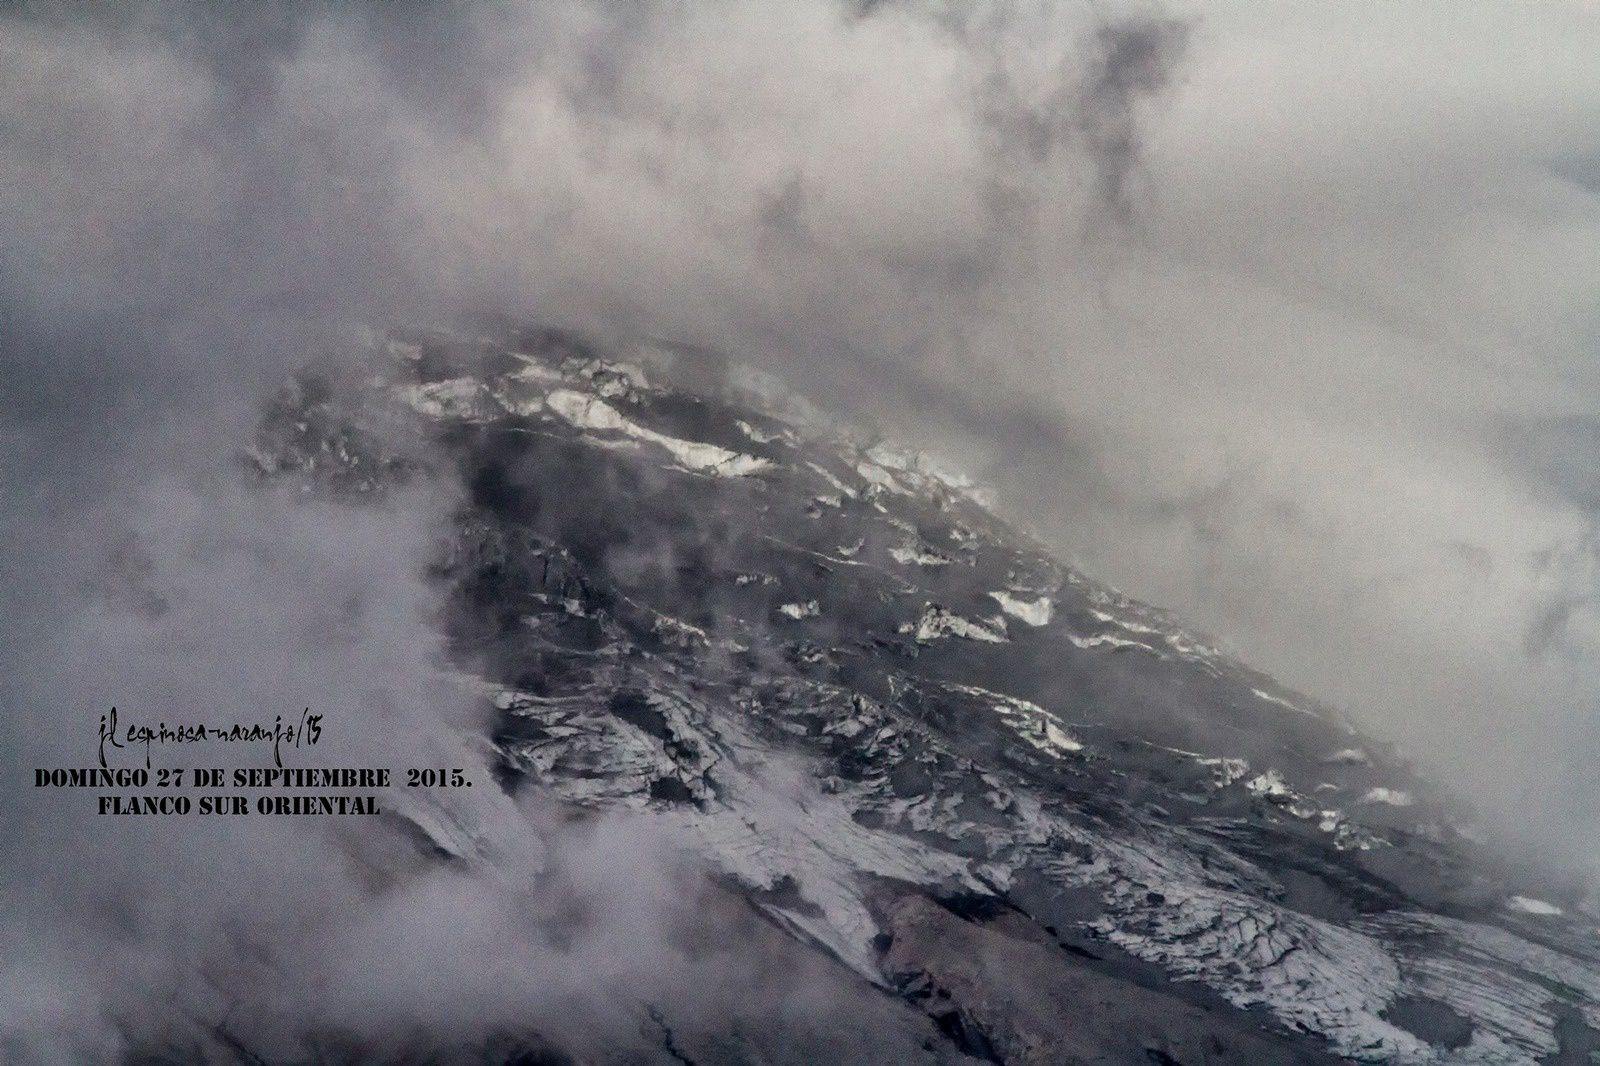 Southeastern flank of the Cotopaxi 09/27/2015 - photo Jose Luis Espinosa-Naranjo